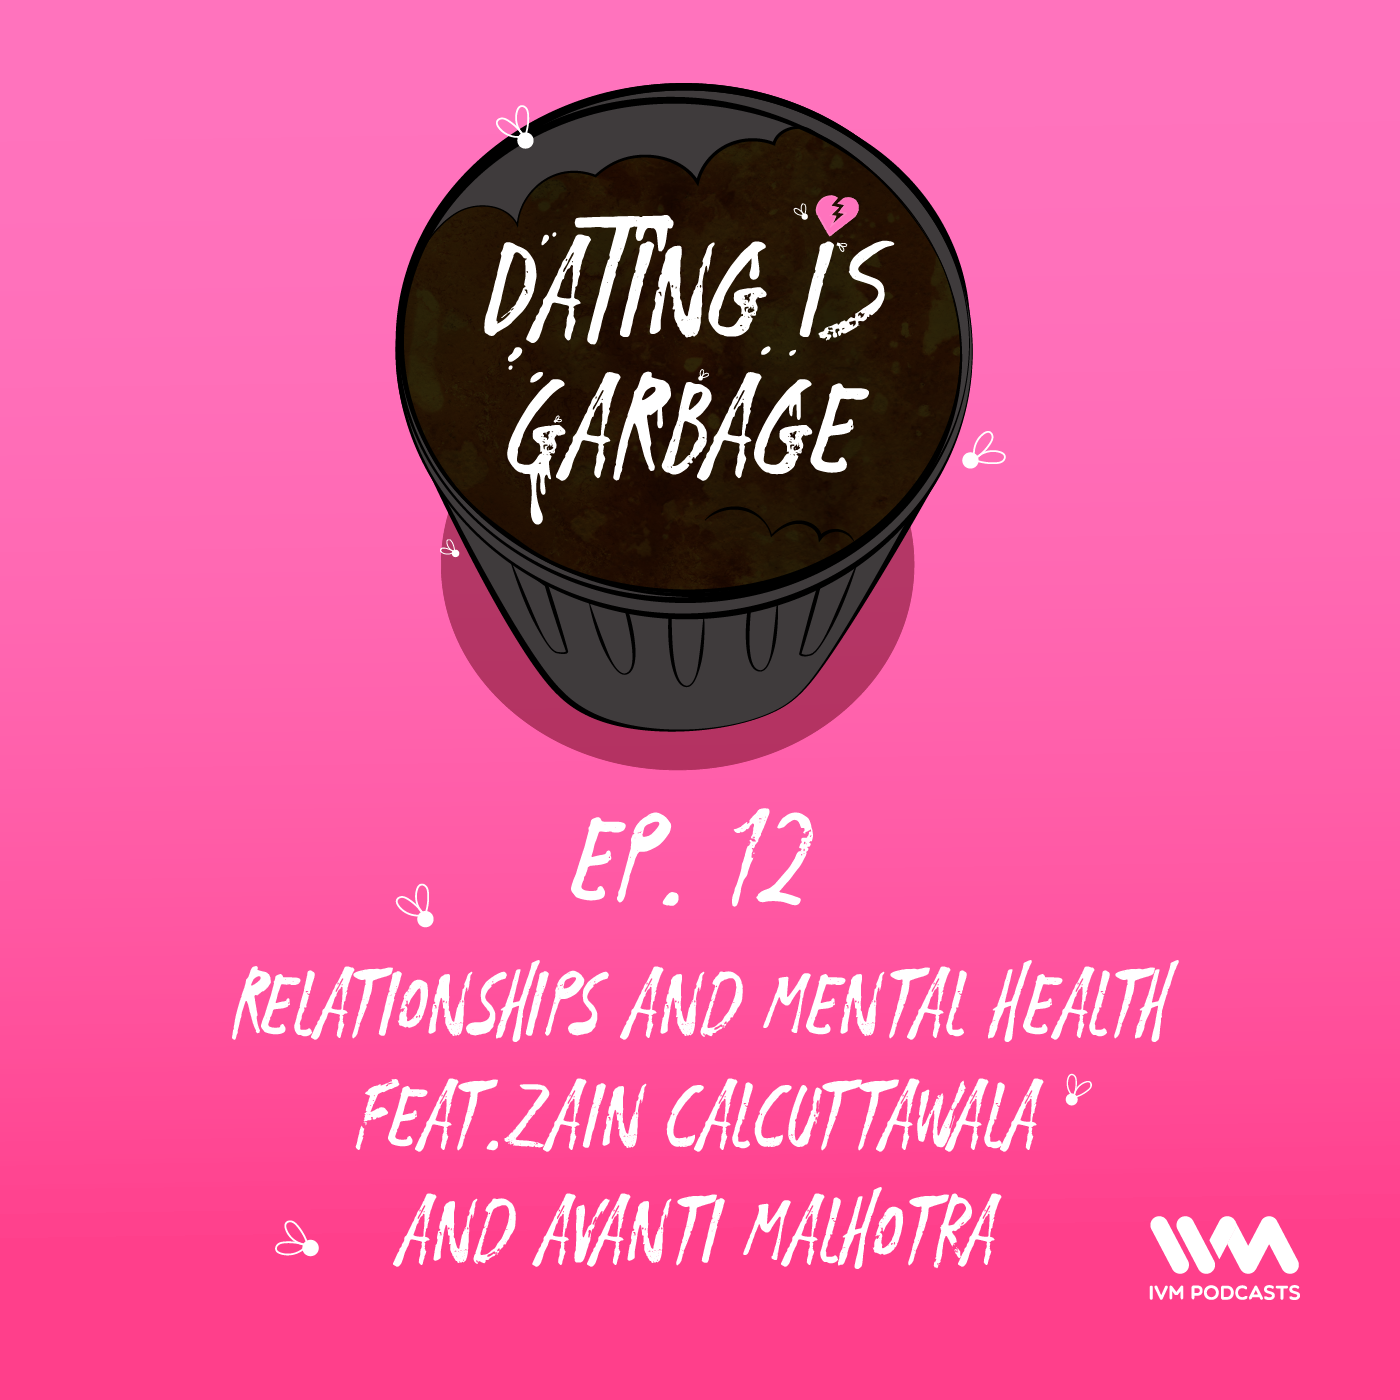 Ep. 12: Relationships and Mental Health